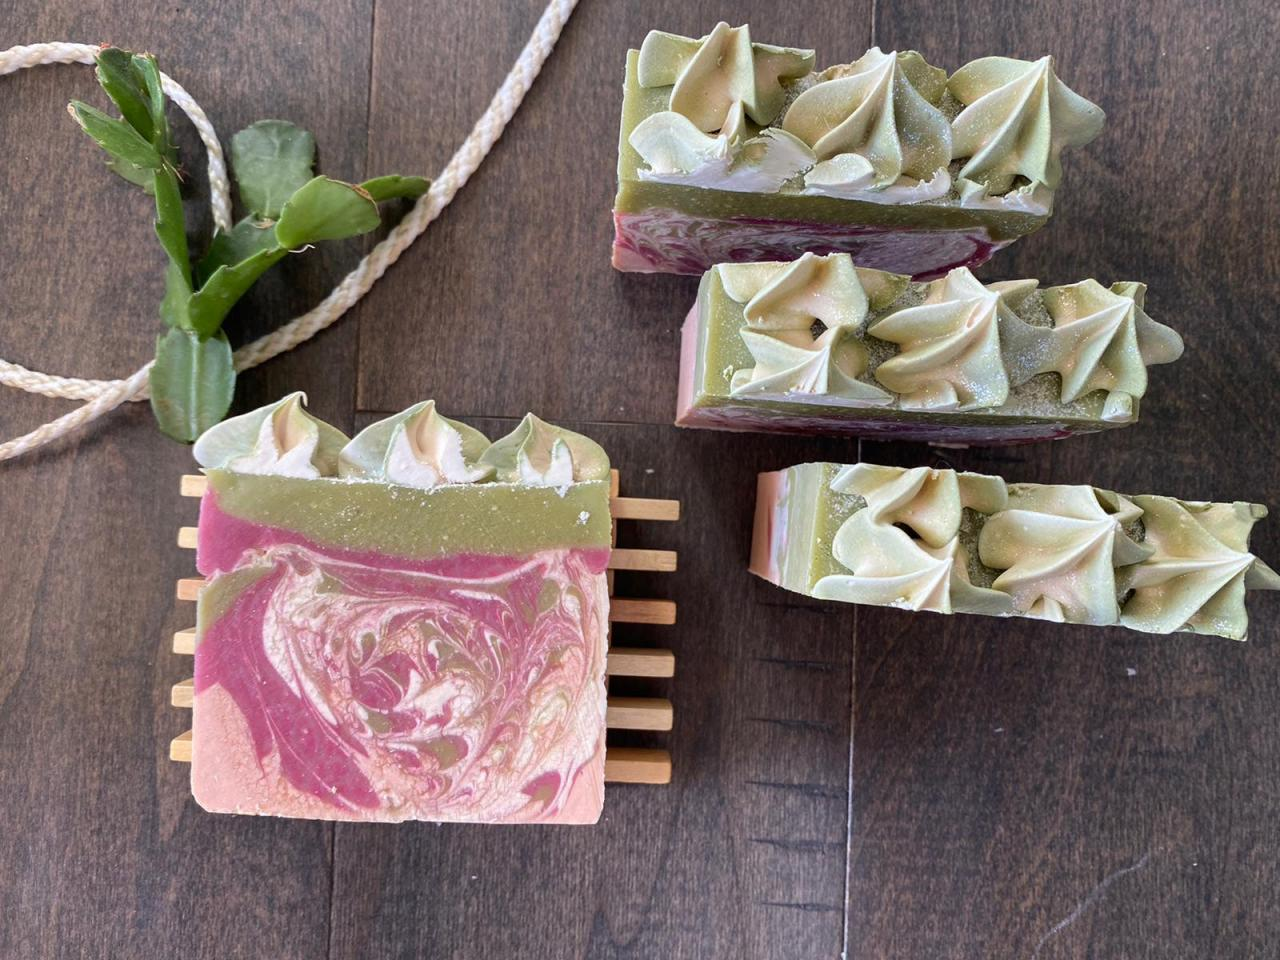 Handmade Natural Soap, Sensuous Love with FROSTING handcrafted soap!!! with bonus gifts